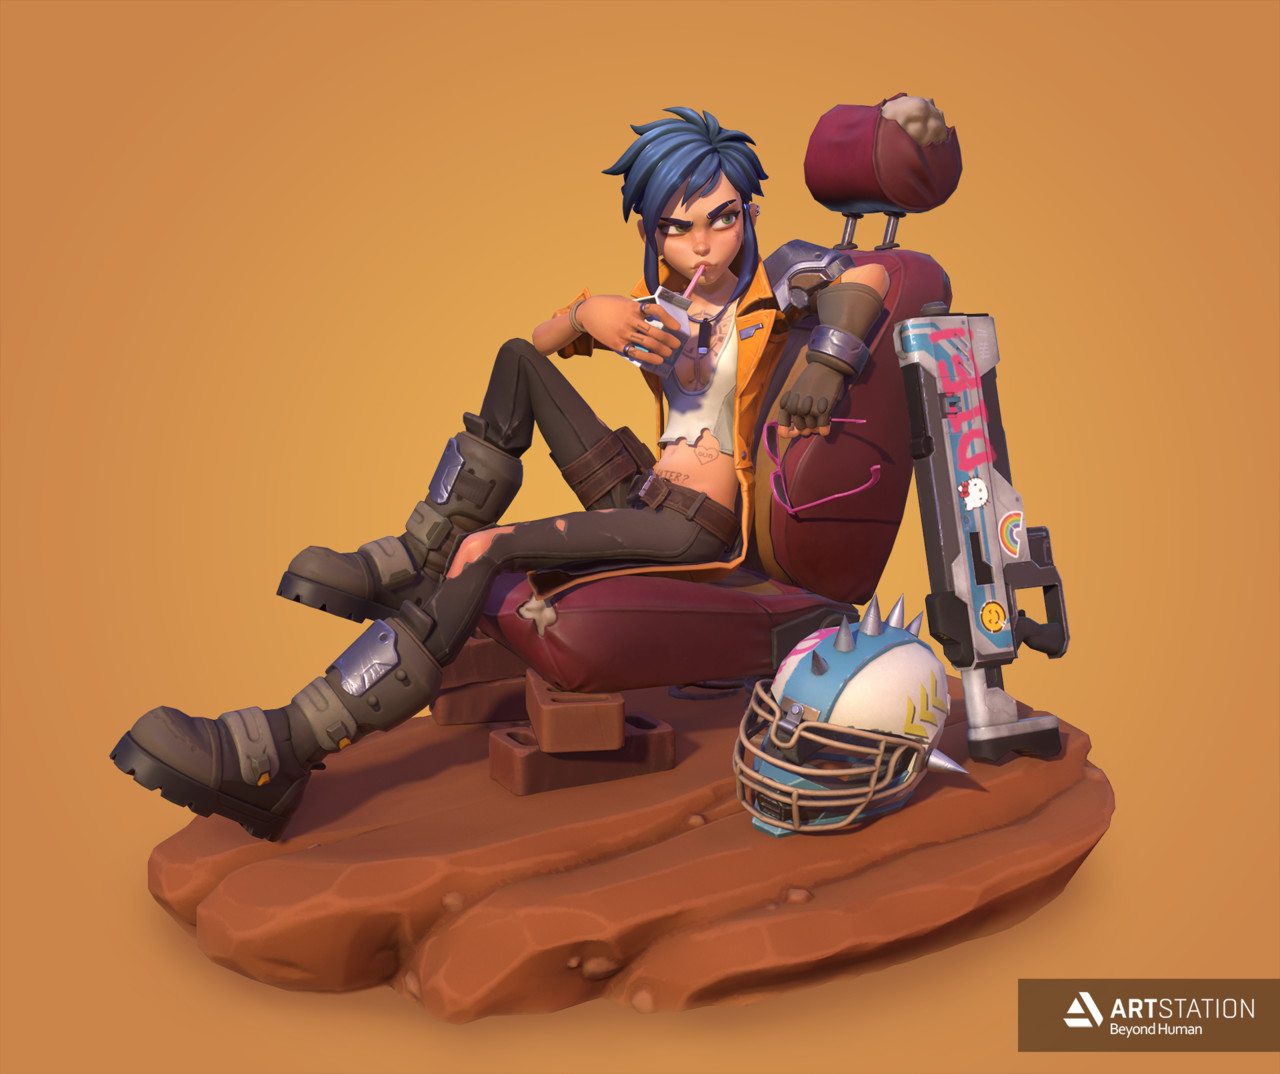 1st Place, Beyond Human: Game Character Art (real-time)